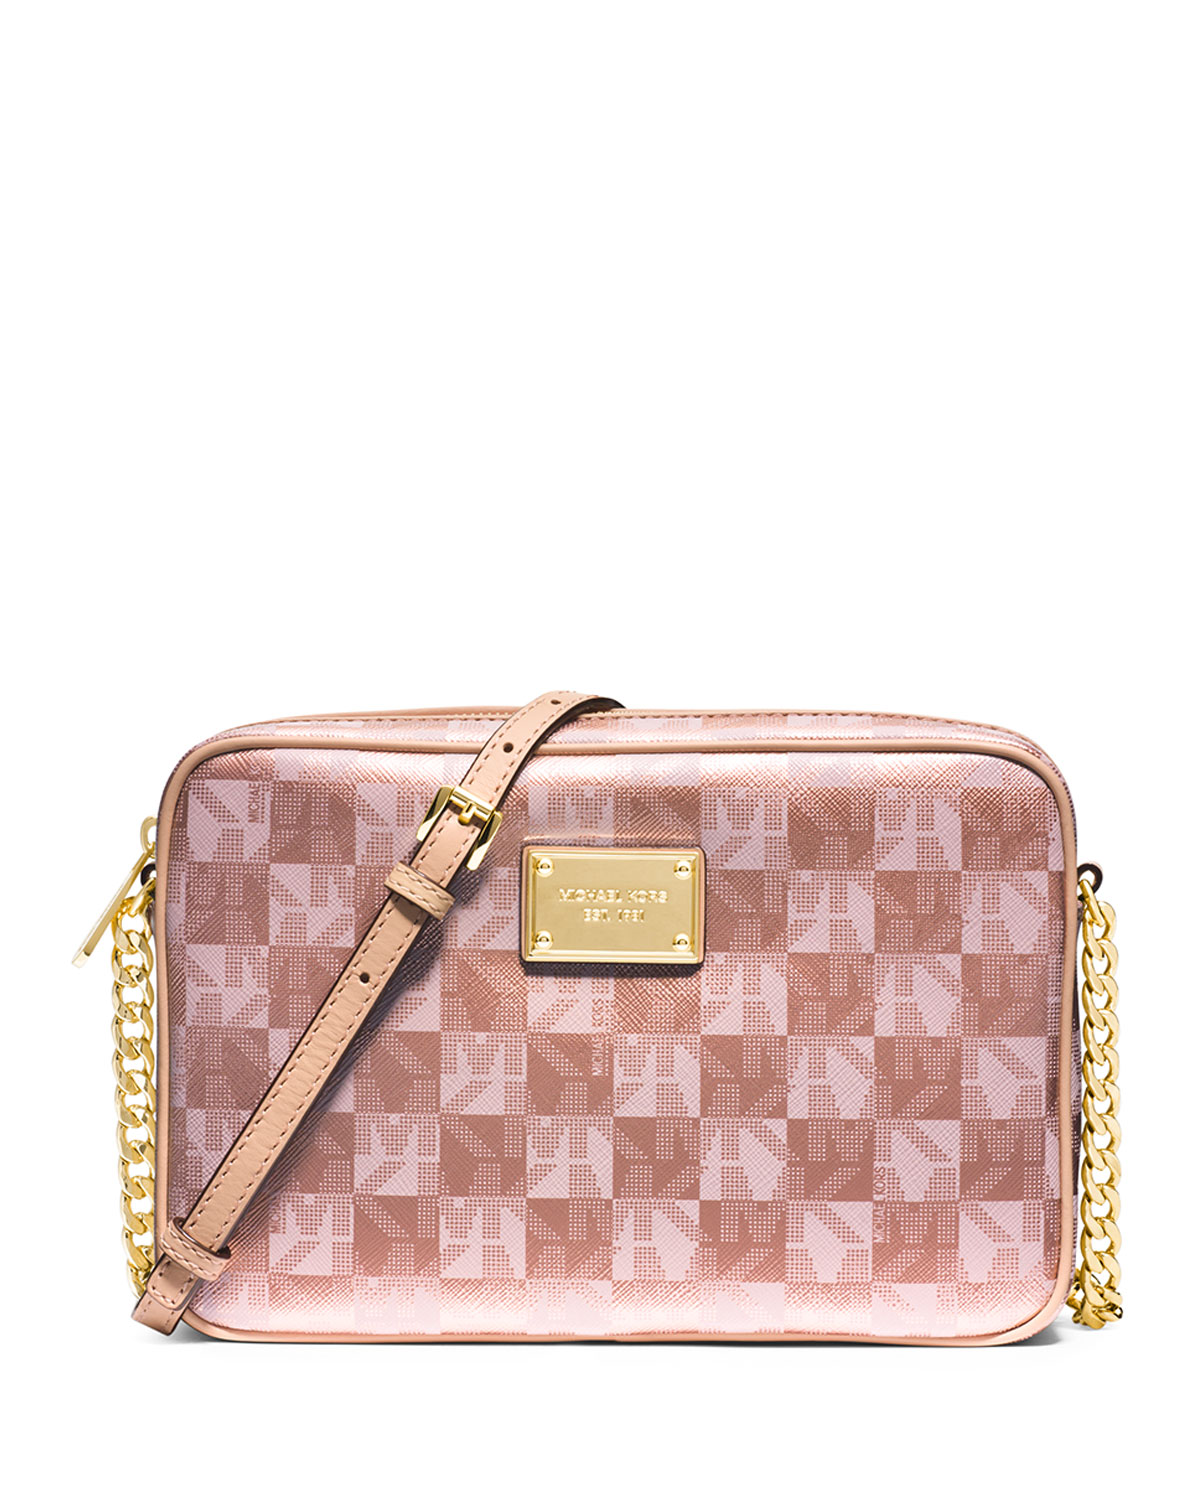 6949ae7ed22c MICHAEL Michael Kors Jet Set Large Checkerboard Crossbody Bag, Rose Gold